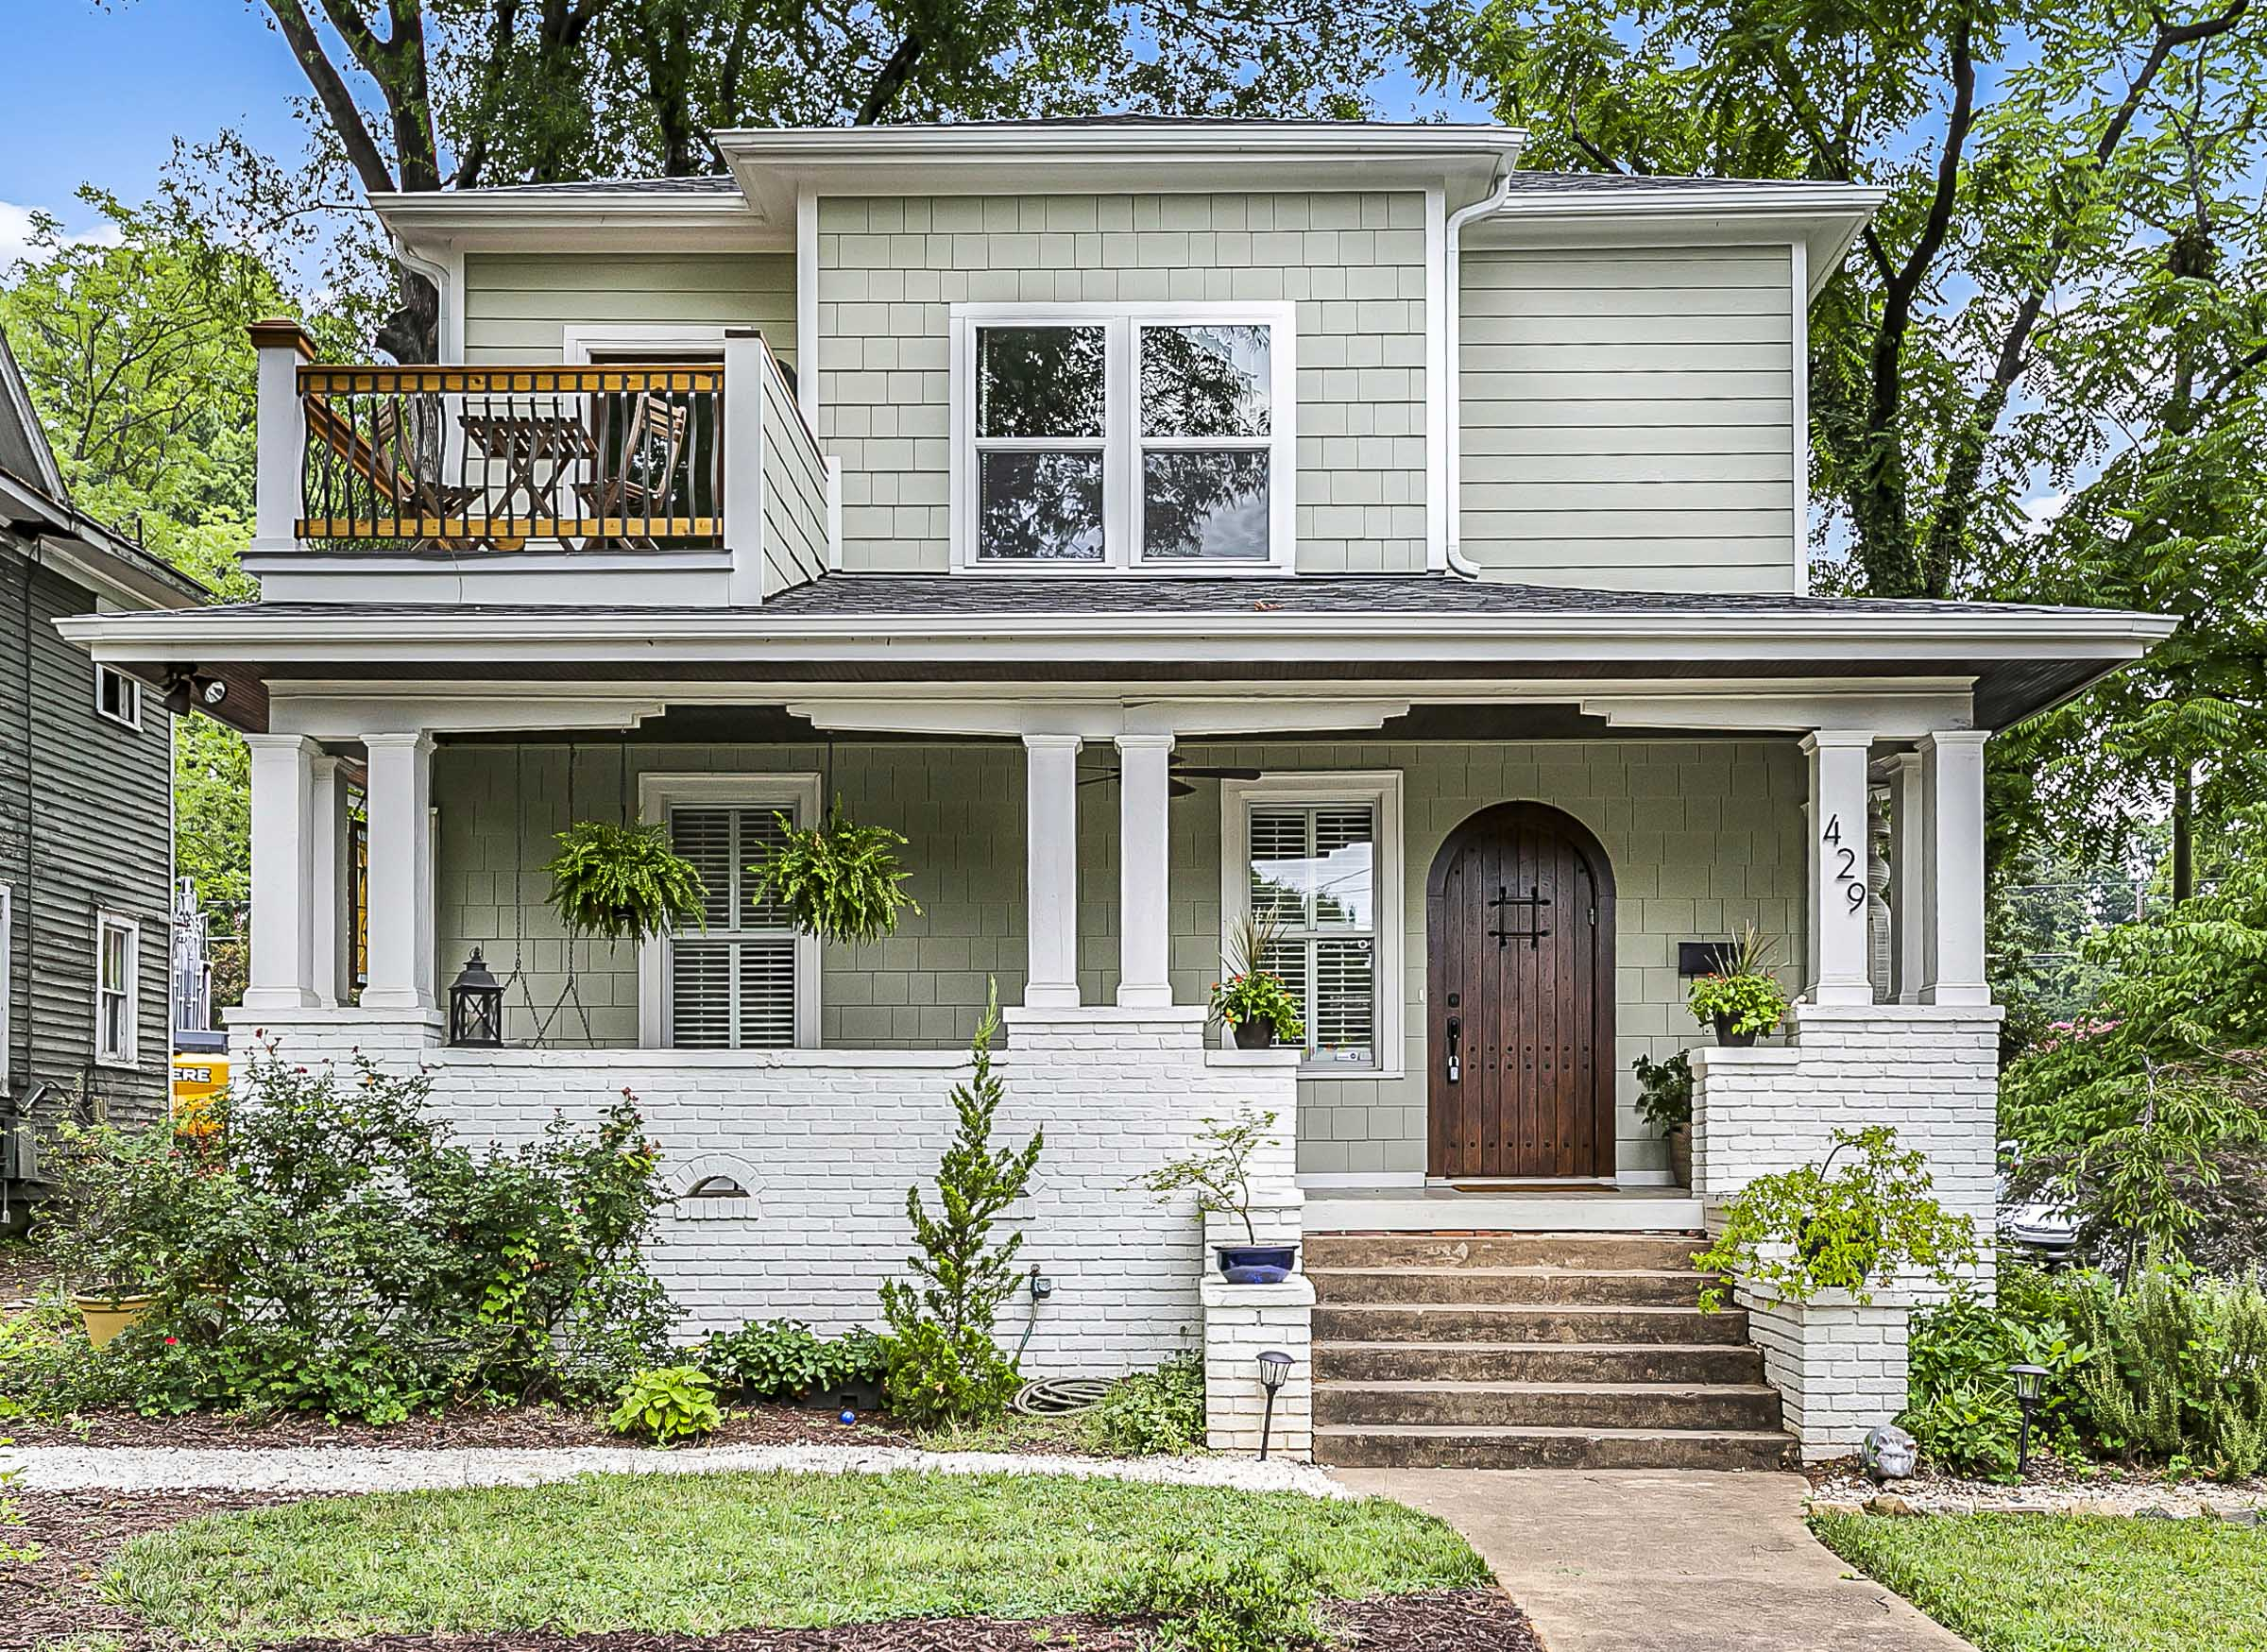 Front Exterior view of home at 429 Pecan Ave. This was an honor to provide professional home measurements and magazine quality professional photographs for the Redbud Group at Keller Williams!